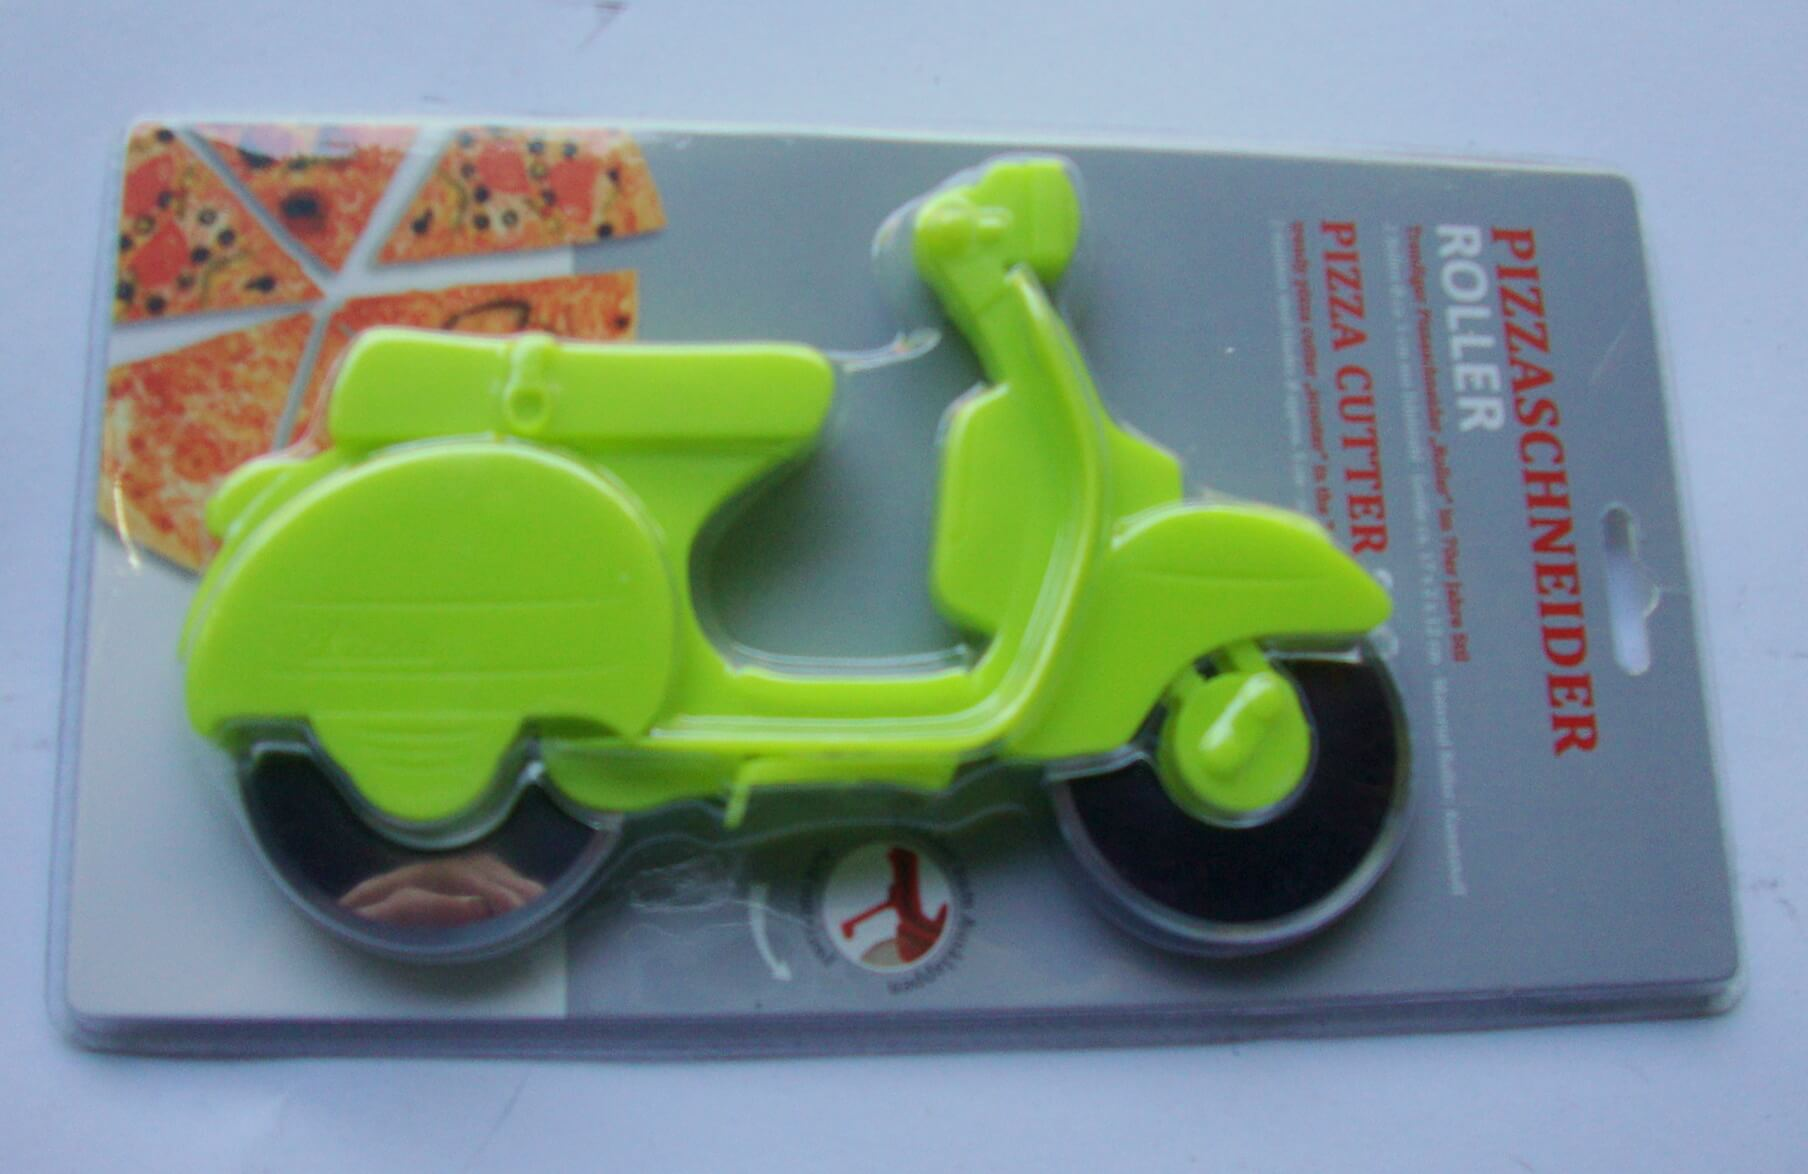 Pizza cutter scooter, apple-green